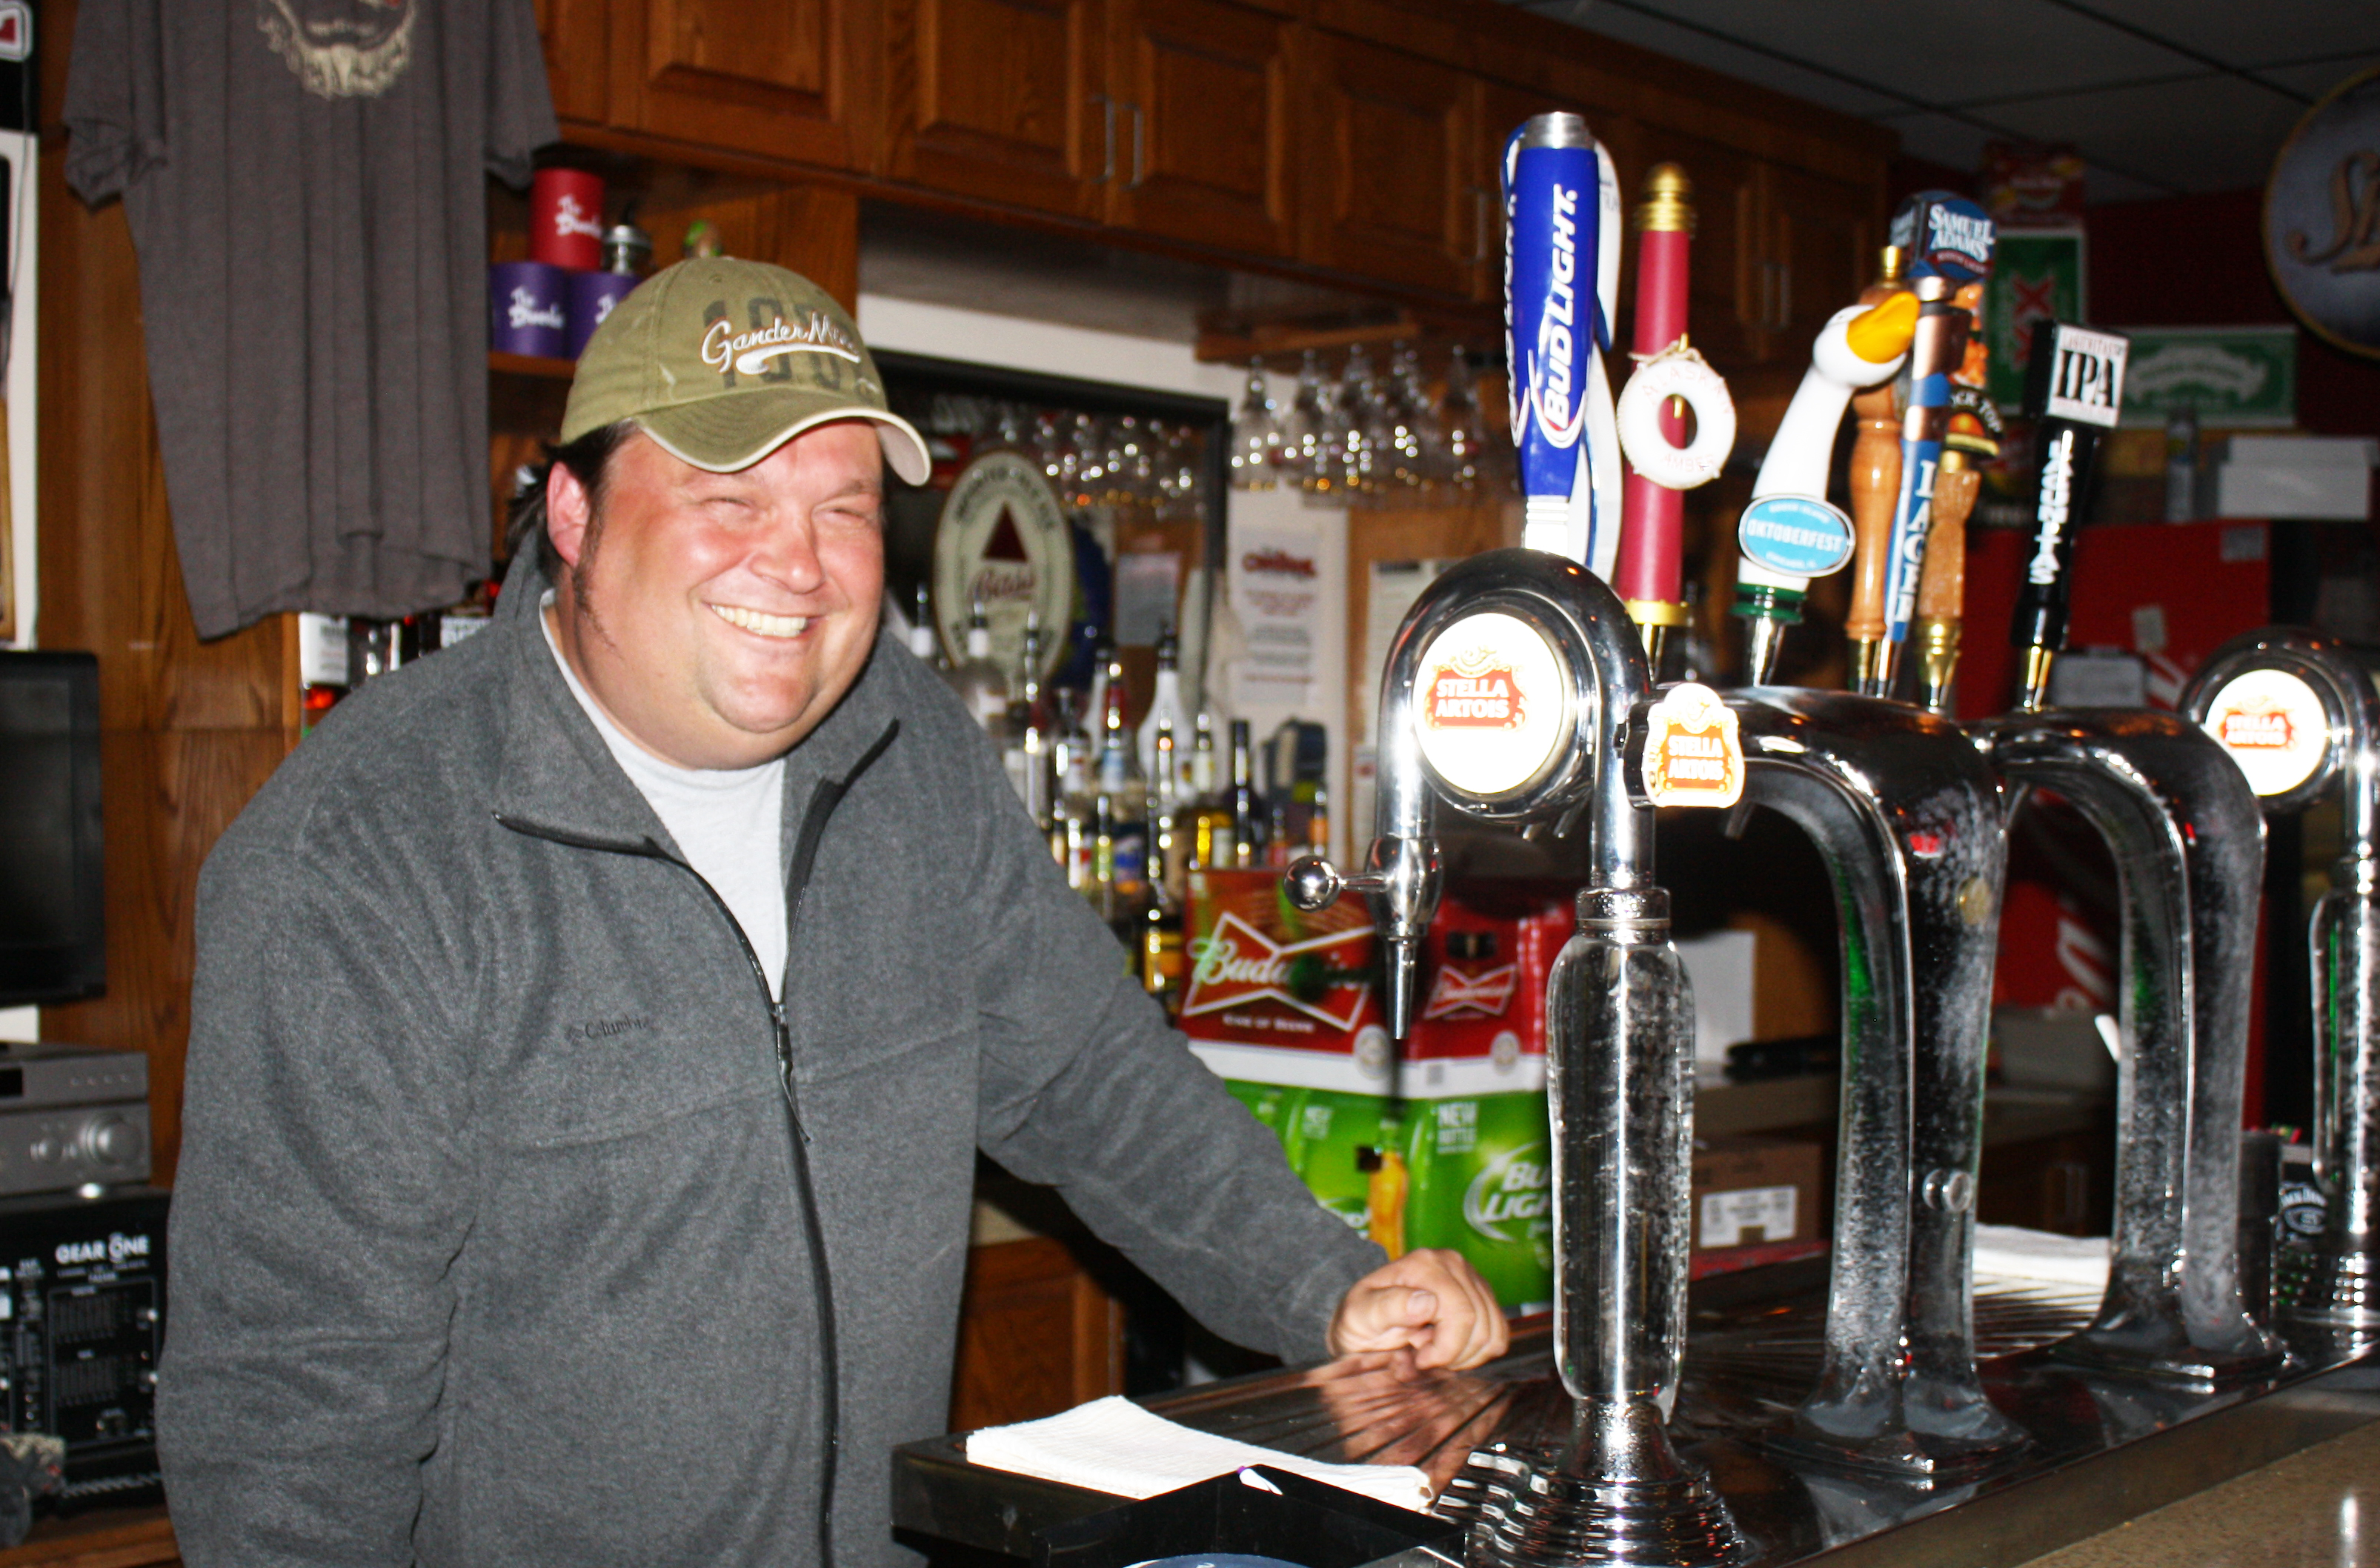 Cardinal Tap owner Karl Stegge says the secret to business success in a small town is adapting to the community's needs. Photo by Wendy Royston